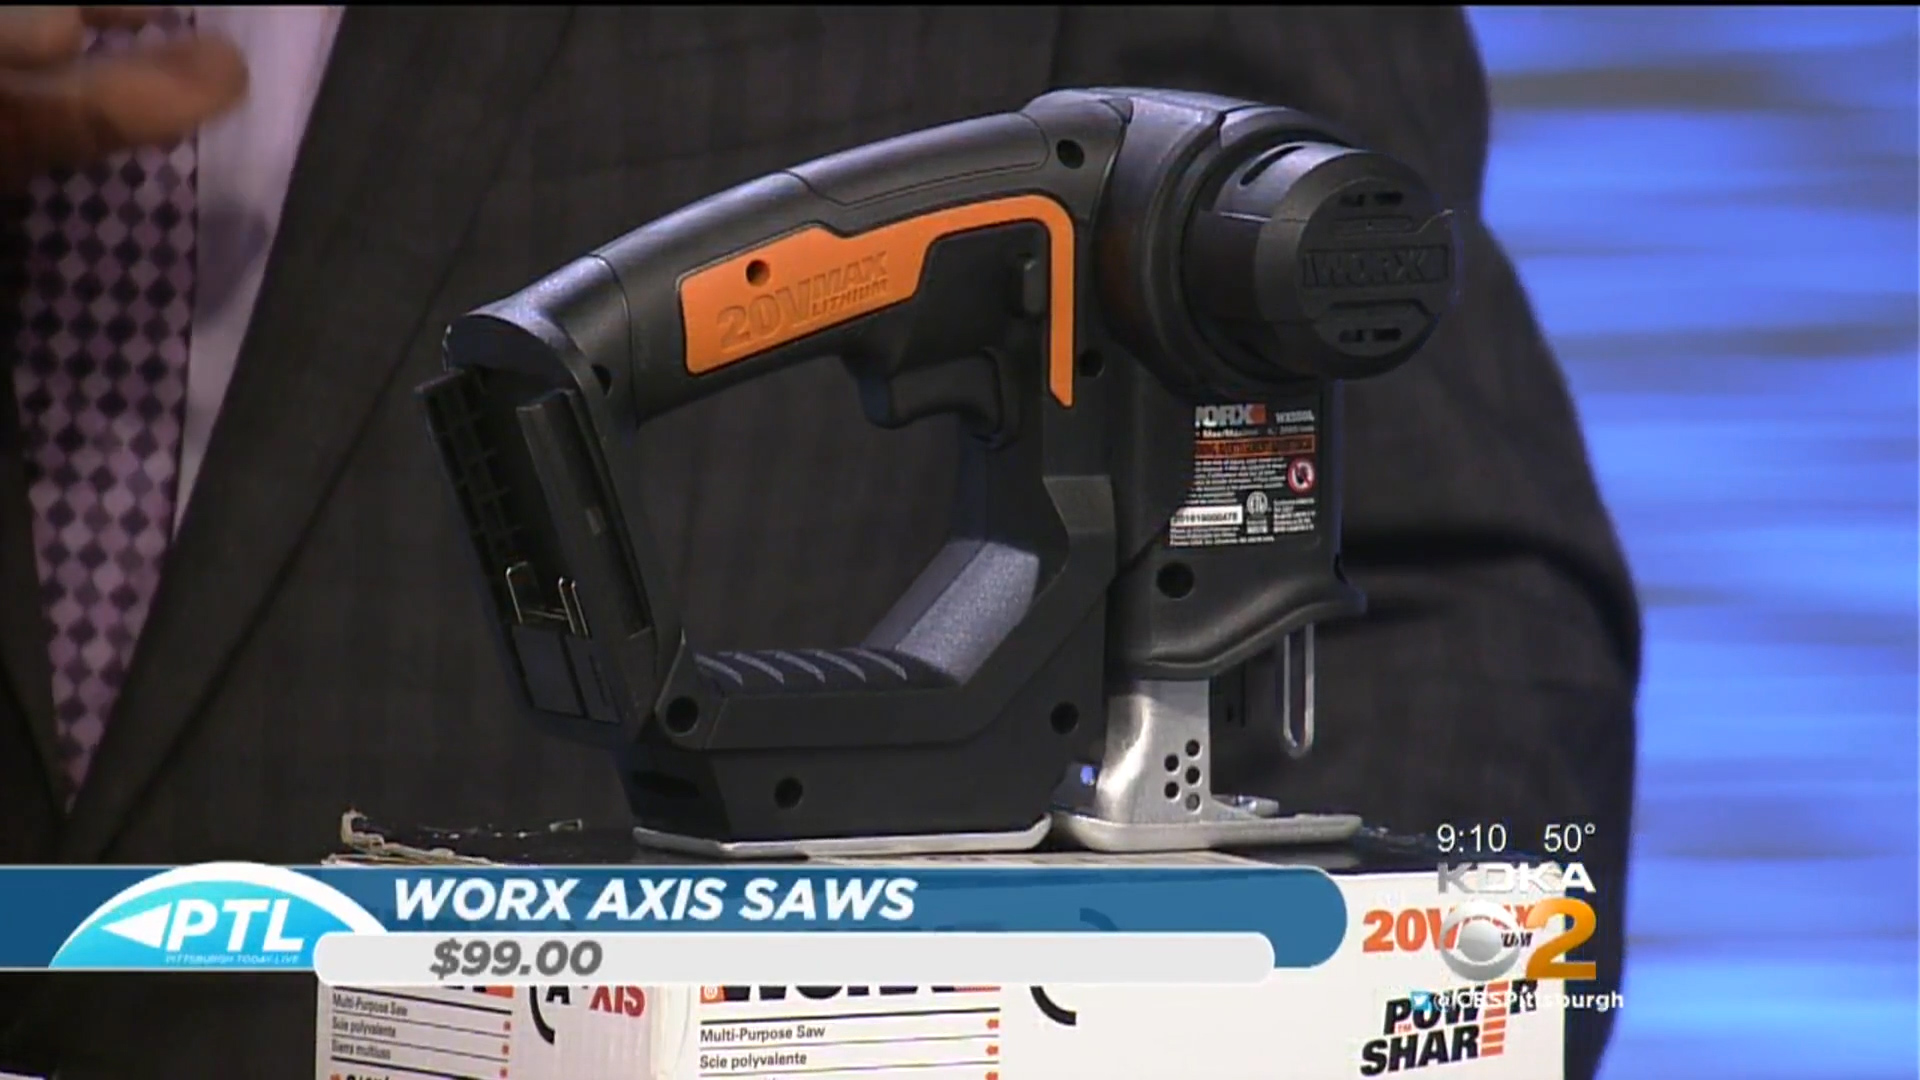 WORX AXIS JIGSAW & RECIPROCATING SAW  - Starting at $99.00Shop Now